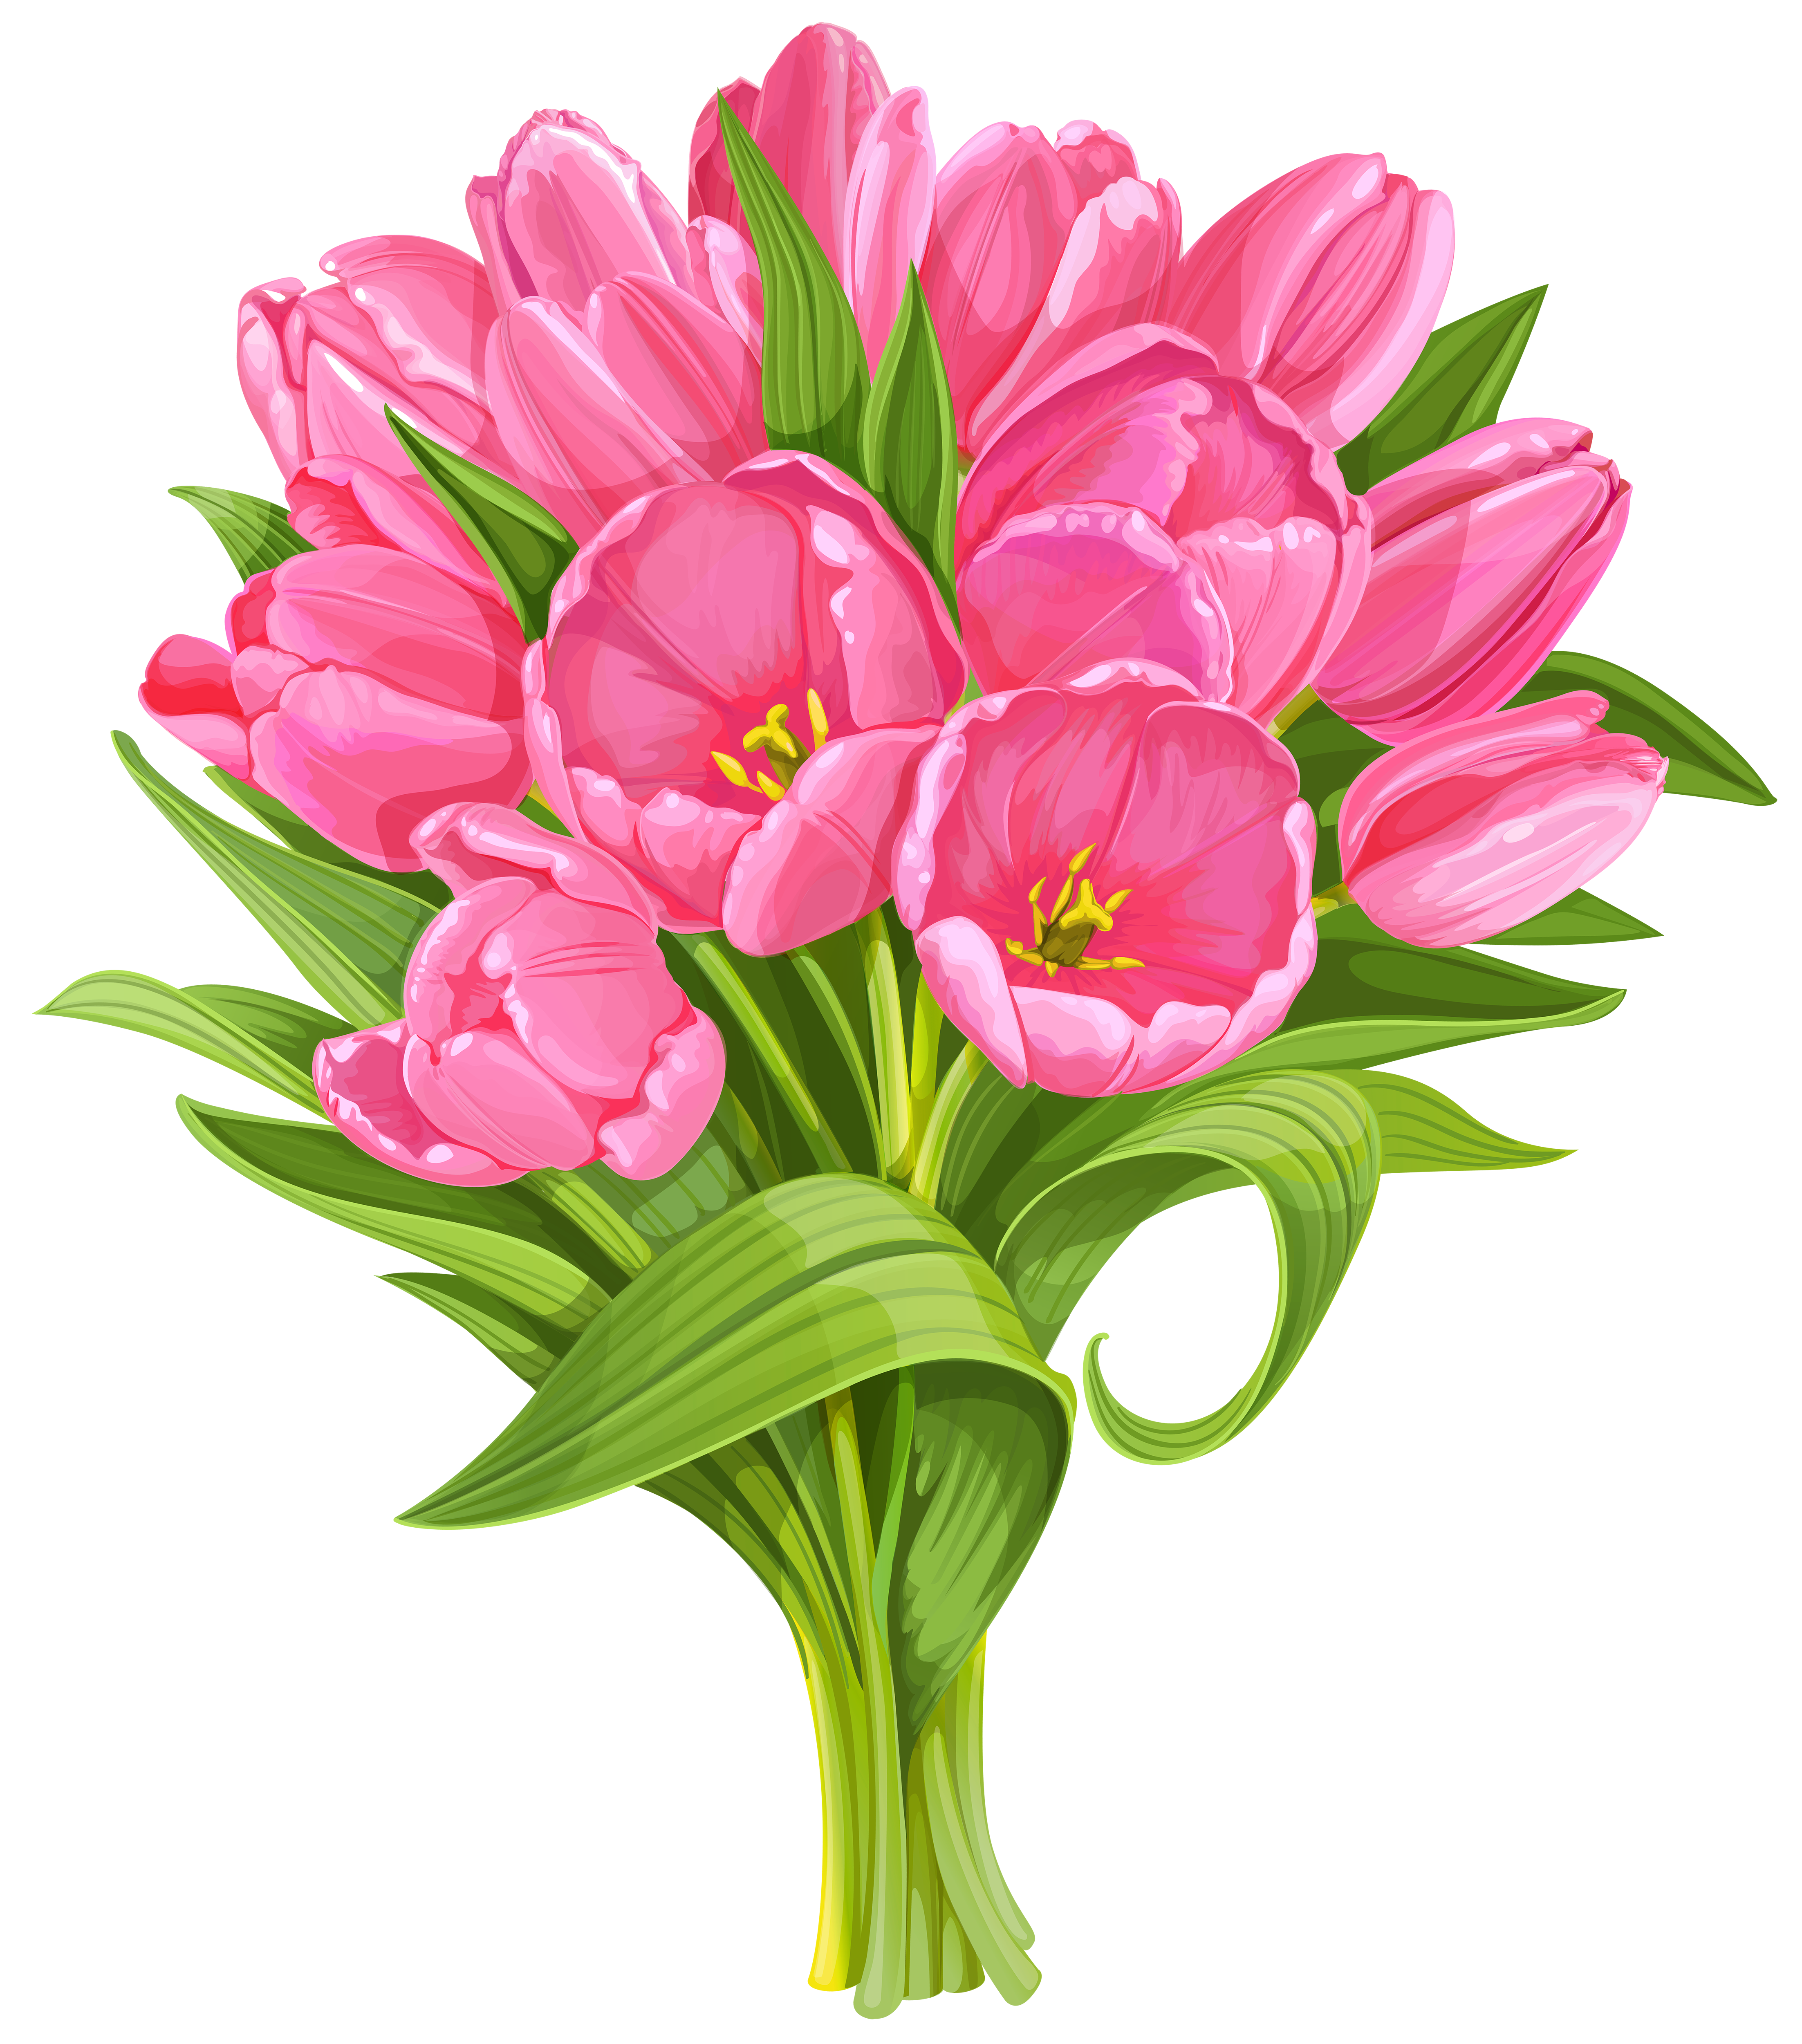 Tulip clipart birds eye view jpg royalty free stock tulip clipart no background #8 | flower cliparts | Tulips, Boquette ... jpg royalty free stock